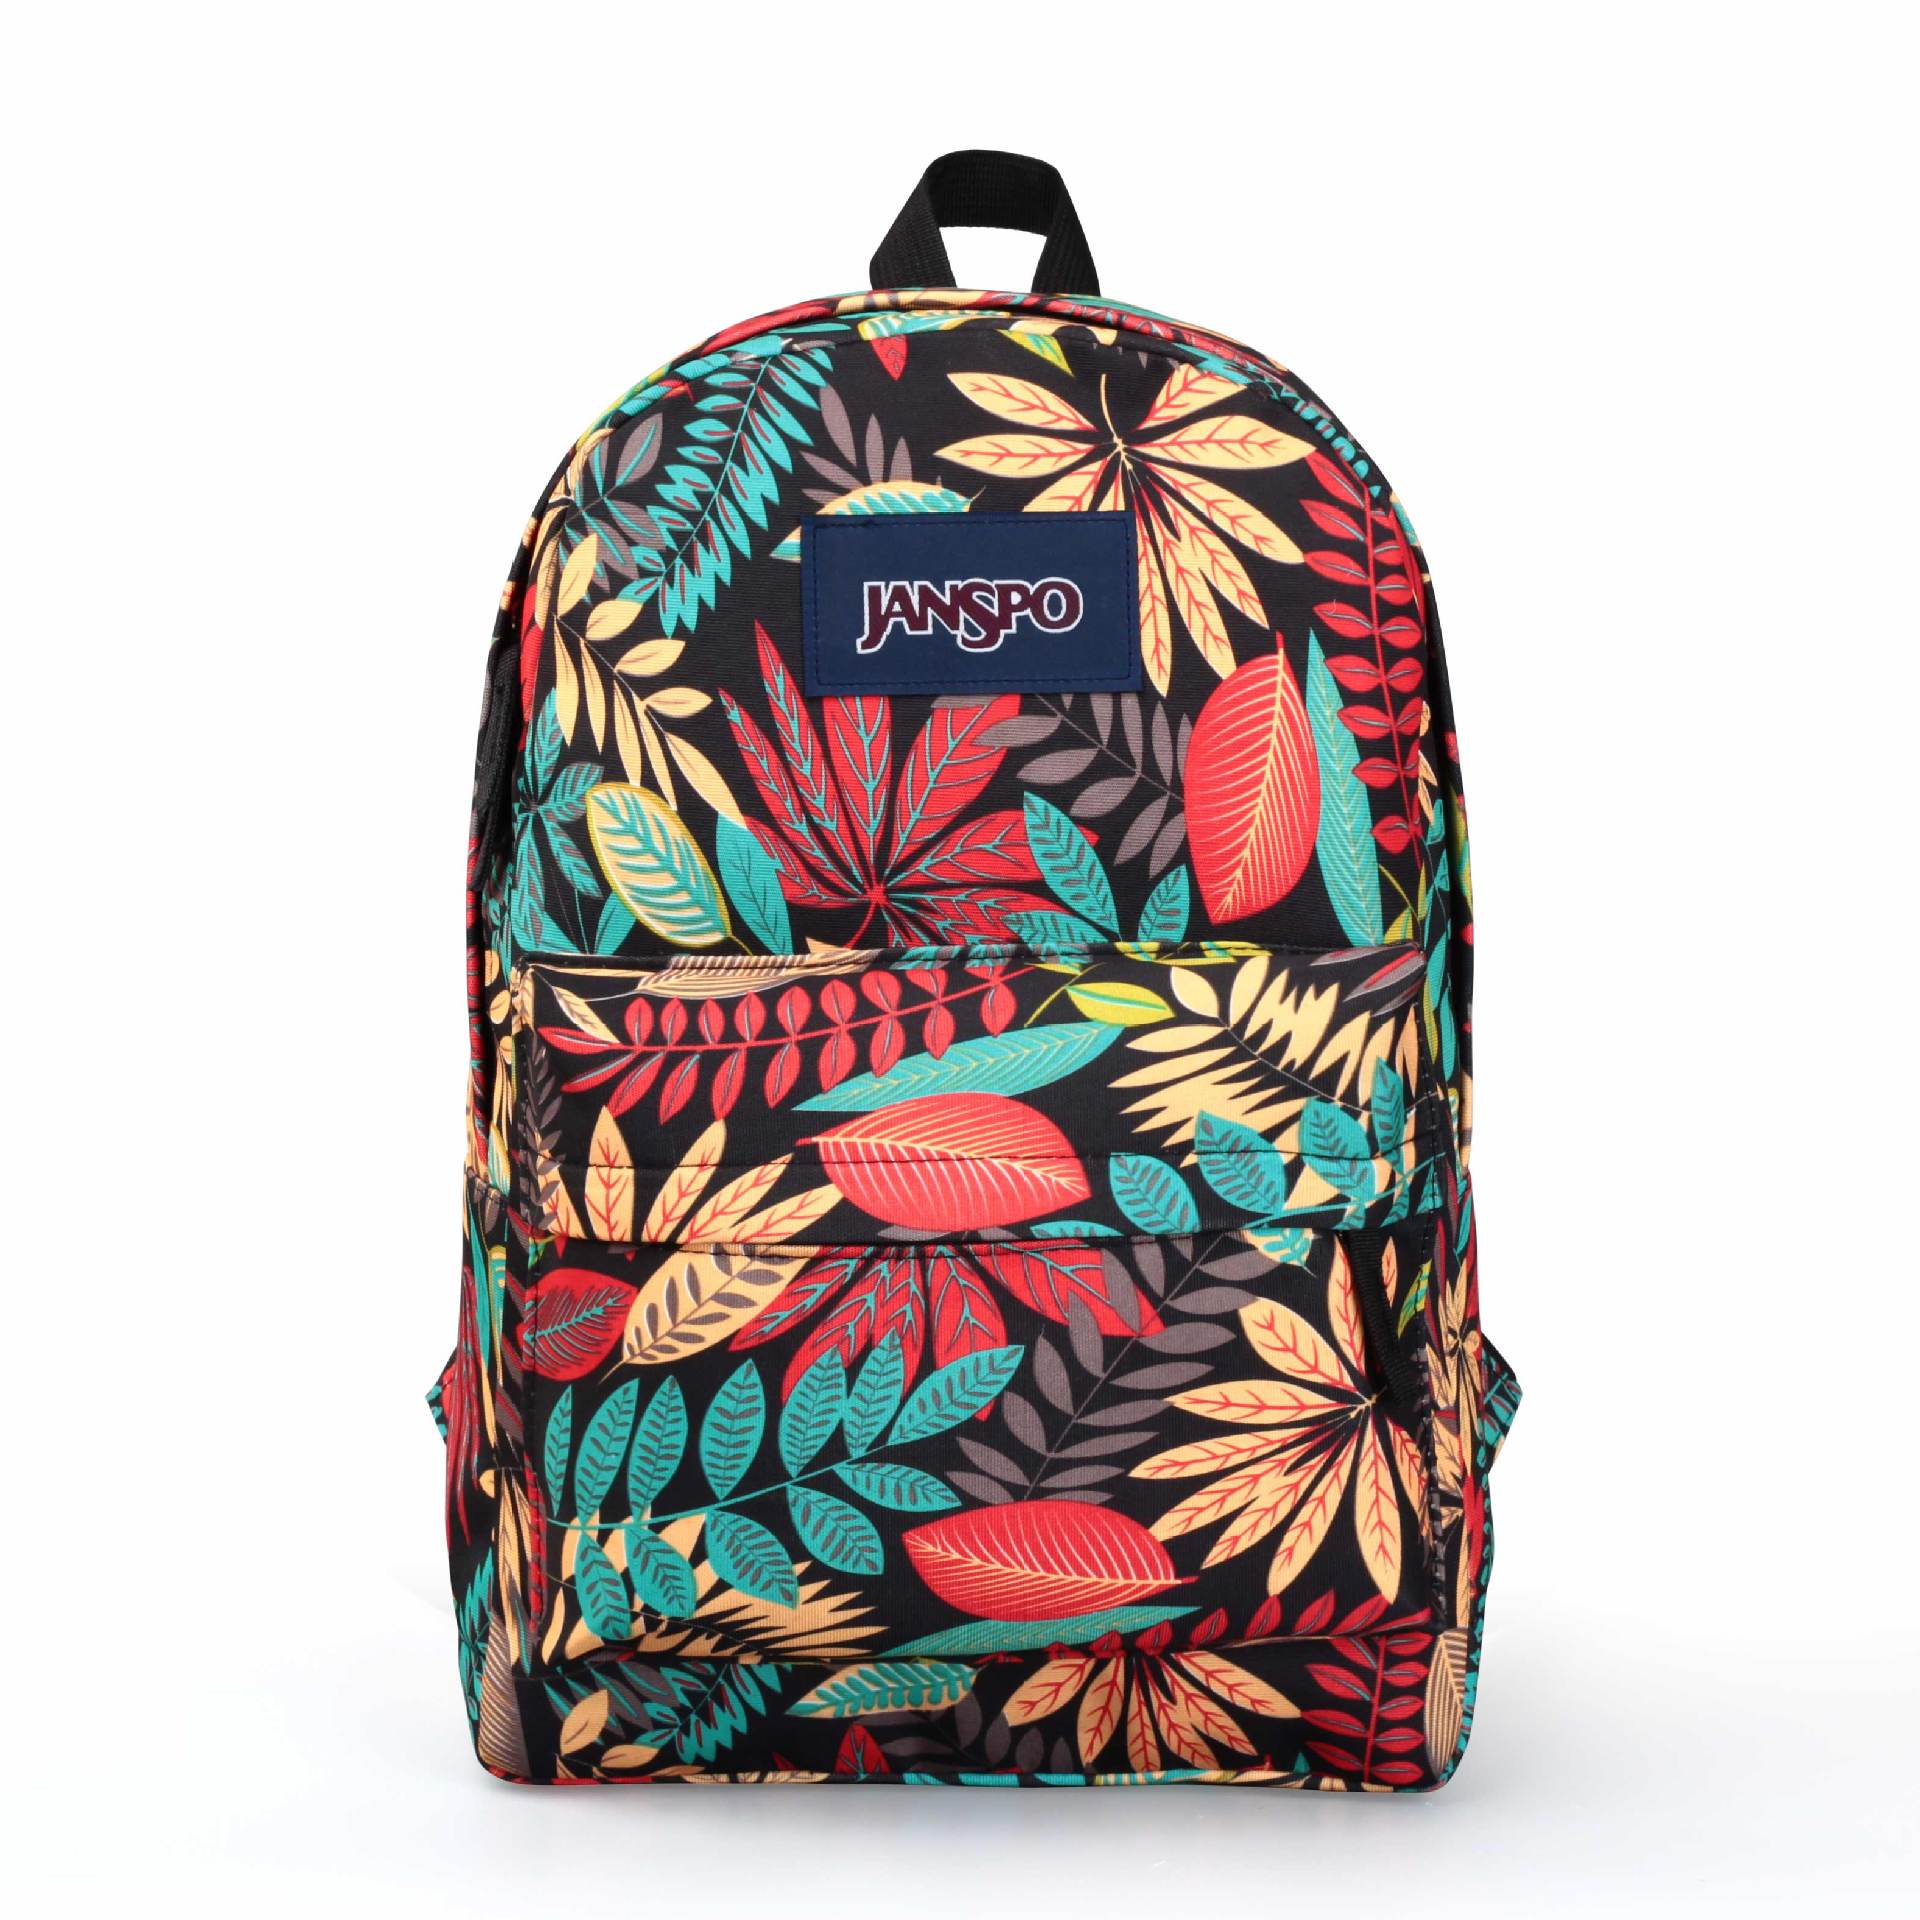 8cc95b5459c Hot selling Tide Brand Hype London Small Pure And Fresh Flowers Flower Lady  Backpack Bags Schoolbag Shoulder Bag Women Bag-in Backpacks from Luggage    Bags ...